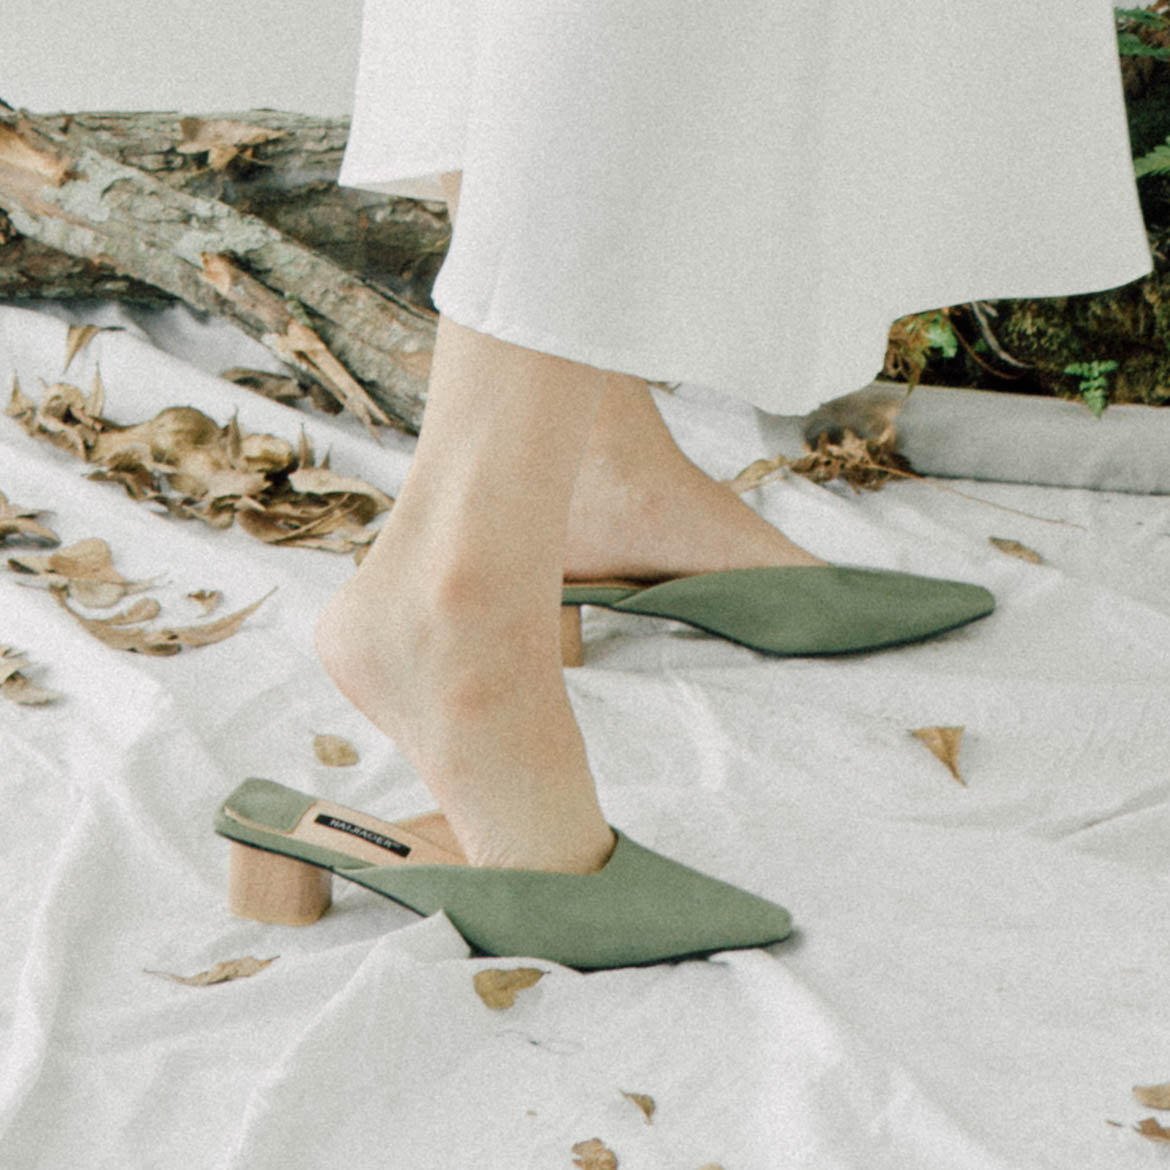 Lazy square head shallow mouth shoes in avocado green